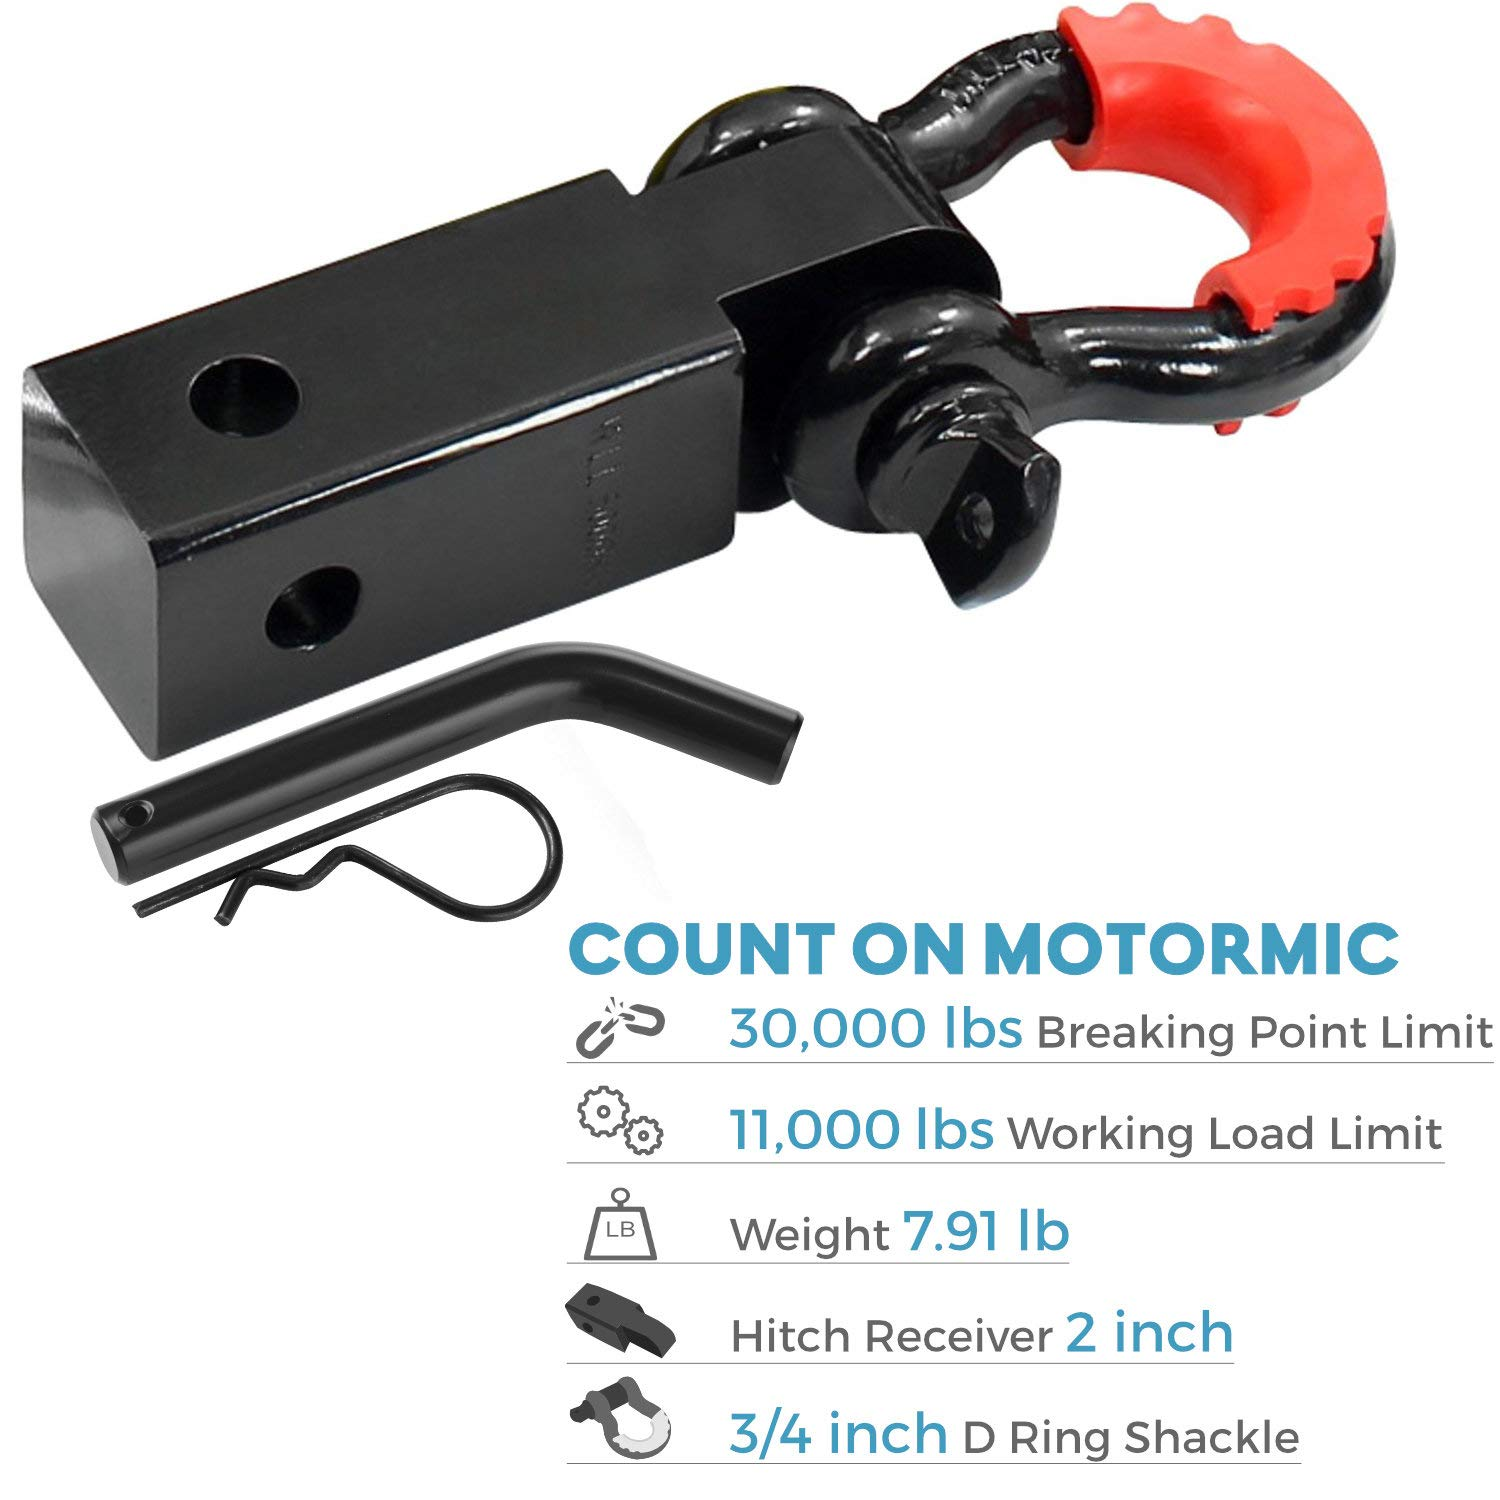 """Heavy Duty Off Road Recovery Black D Ring with 4 washers motormic Shackle Hitch Receiver 2/"""" 5//8 Trailer Lock Pin and 3//4 D Shackle 35,000 lbs Max Capacity Red Isolator for Jeep Towing"""